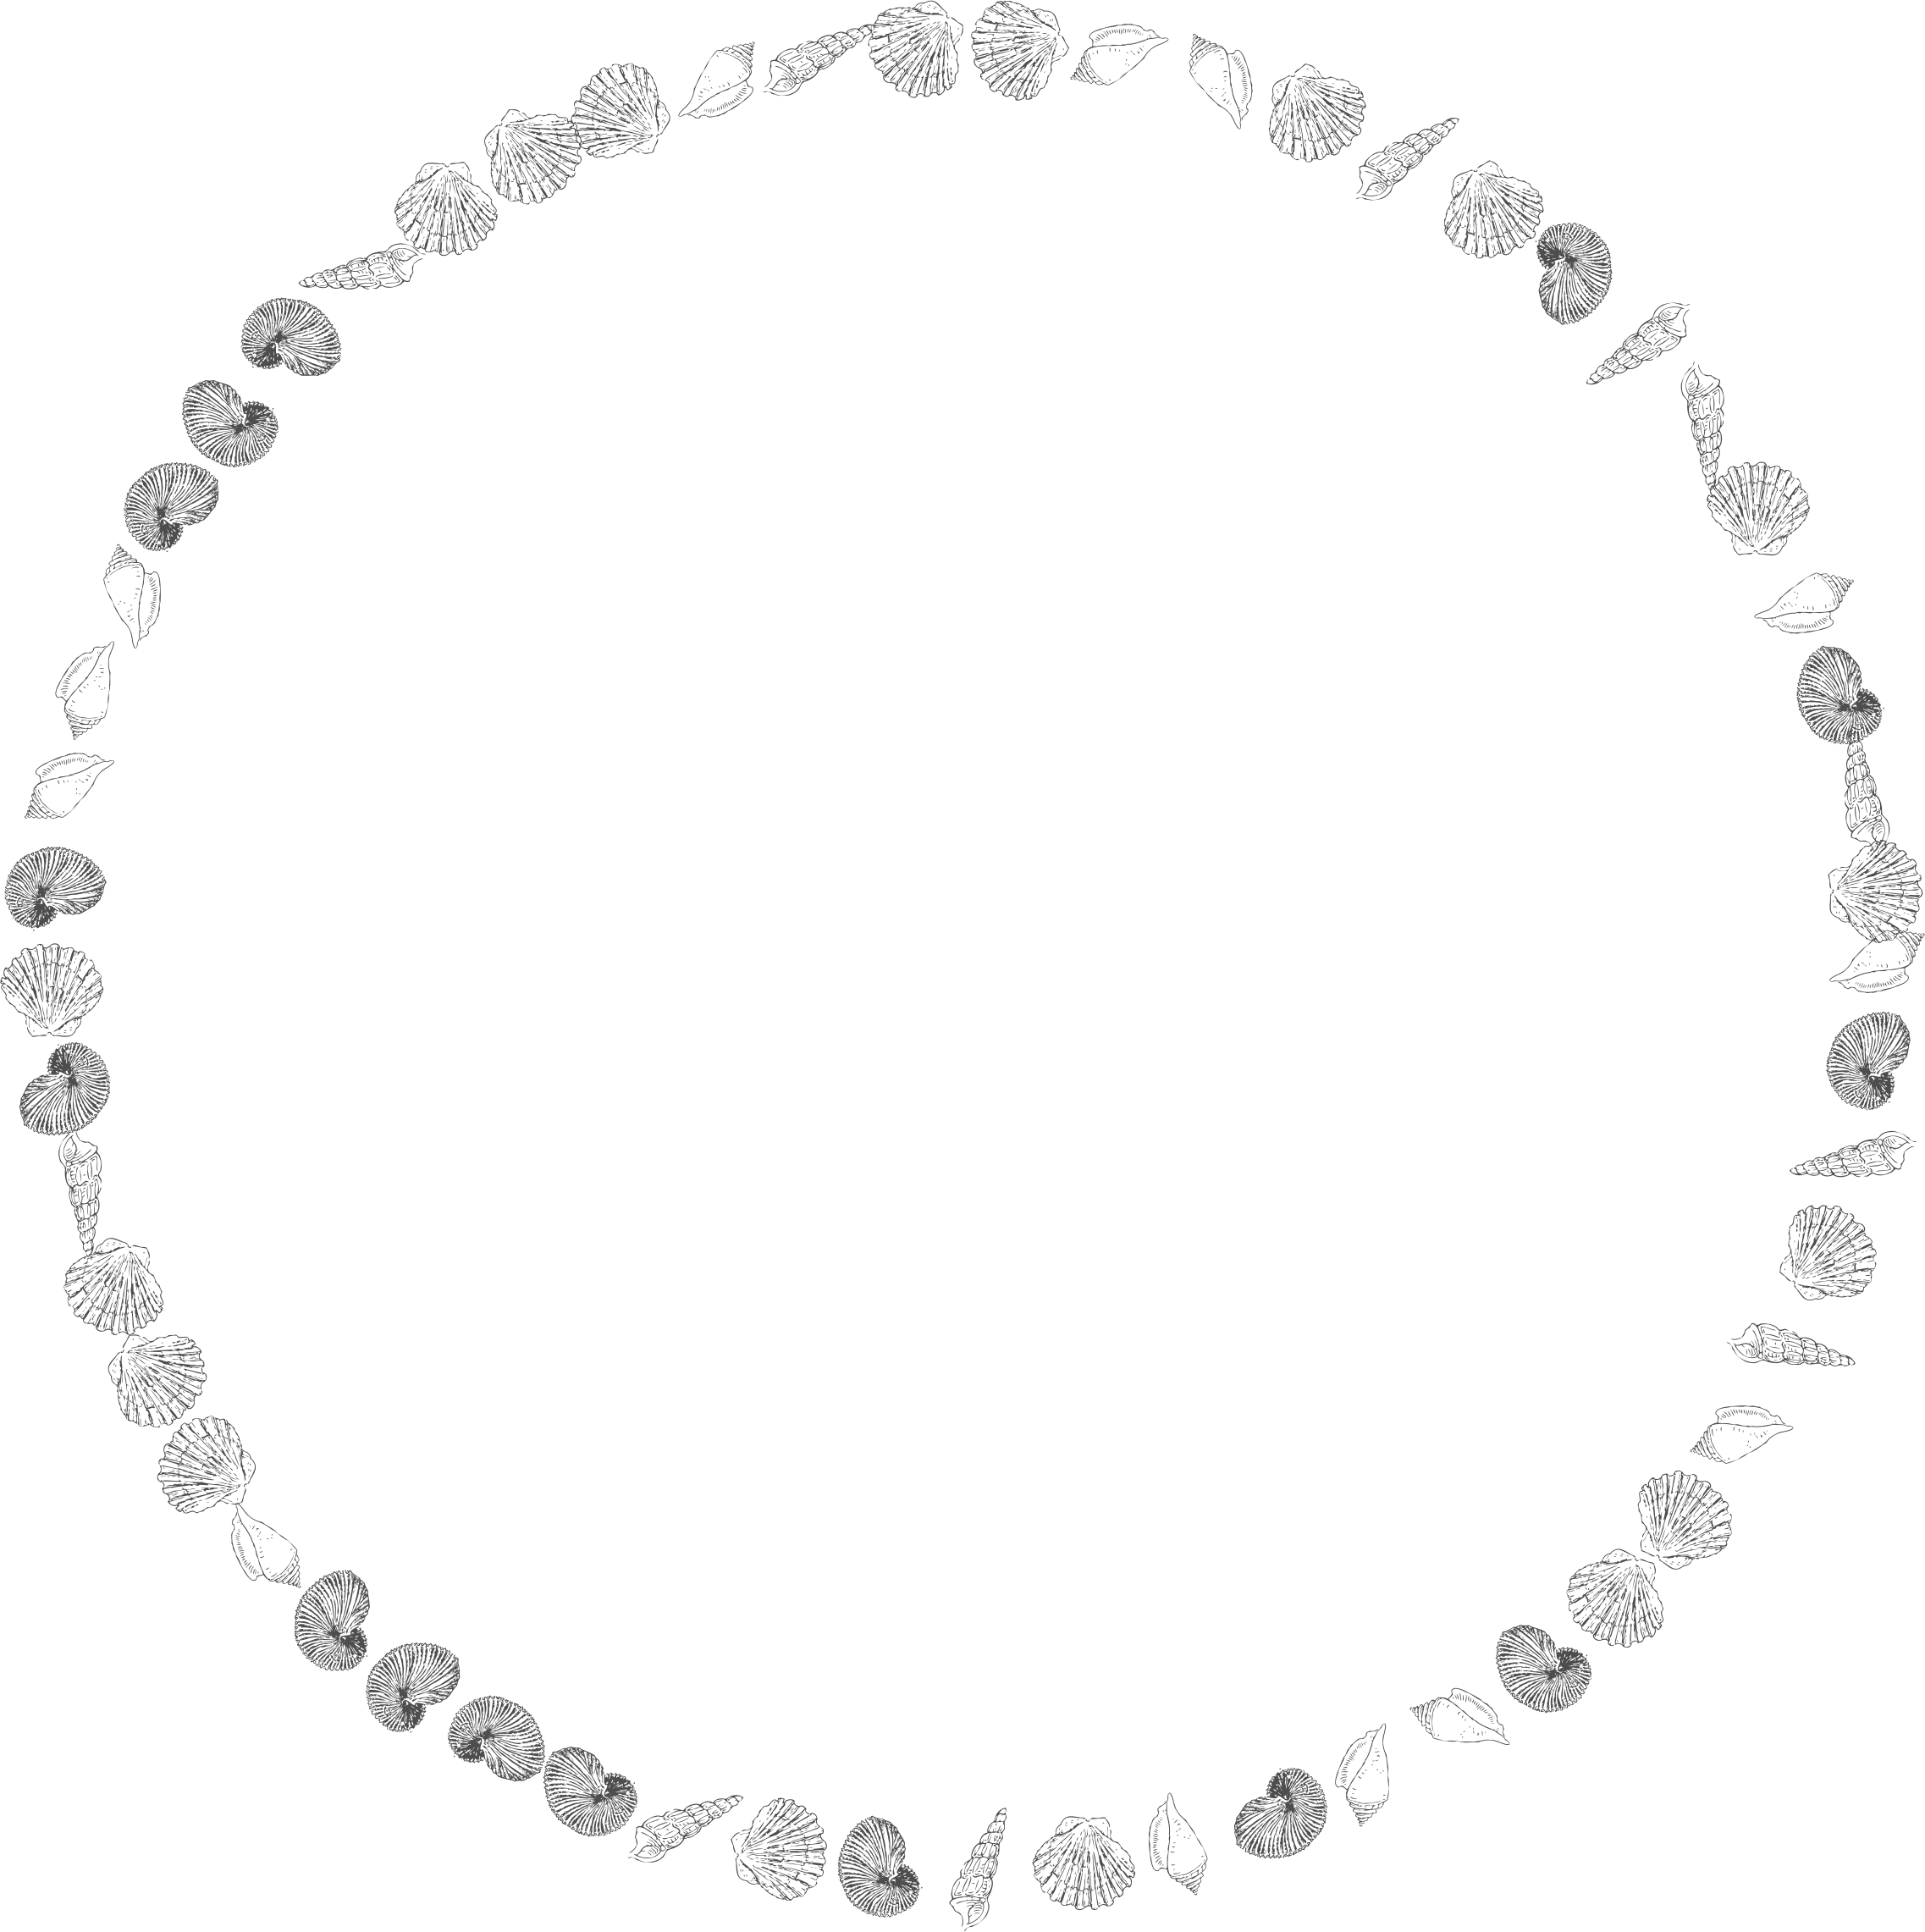 White circle frame png. Clipart round shells big